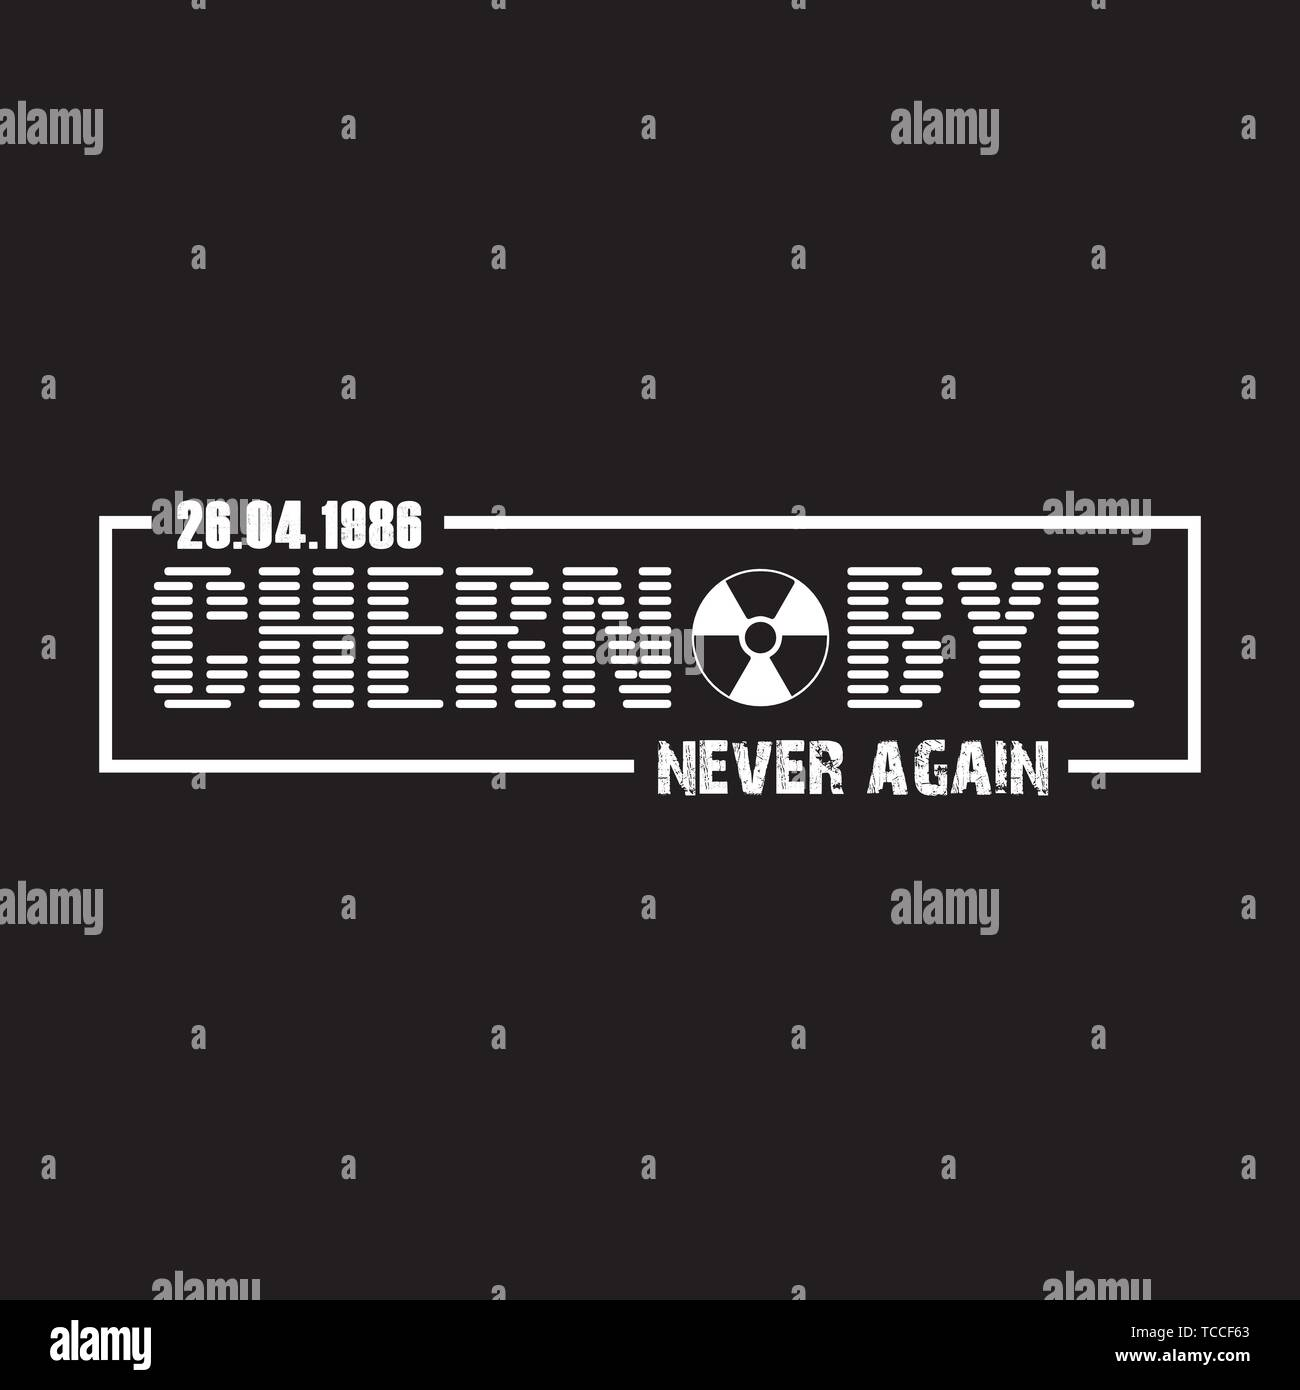 CHERNOBYL - Never Again - Vector illustration design for banner, t shirt graphics, fashion prints, slogan tees, stickers, cards, posters and other - Stock Vector